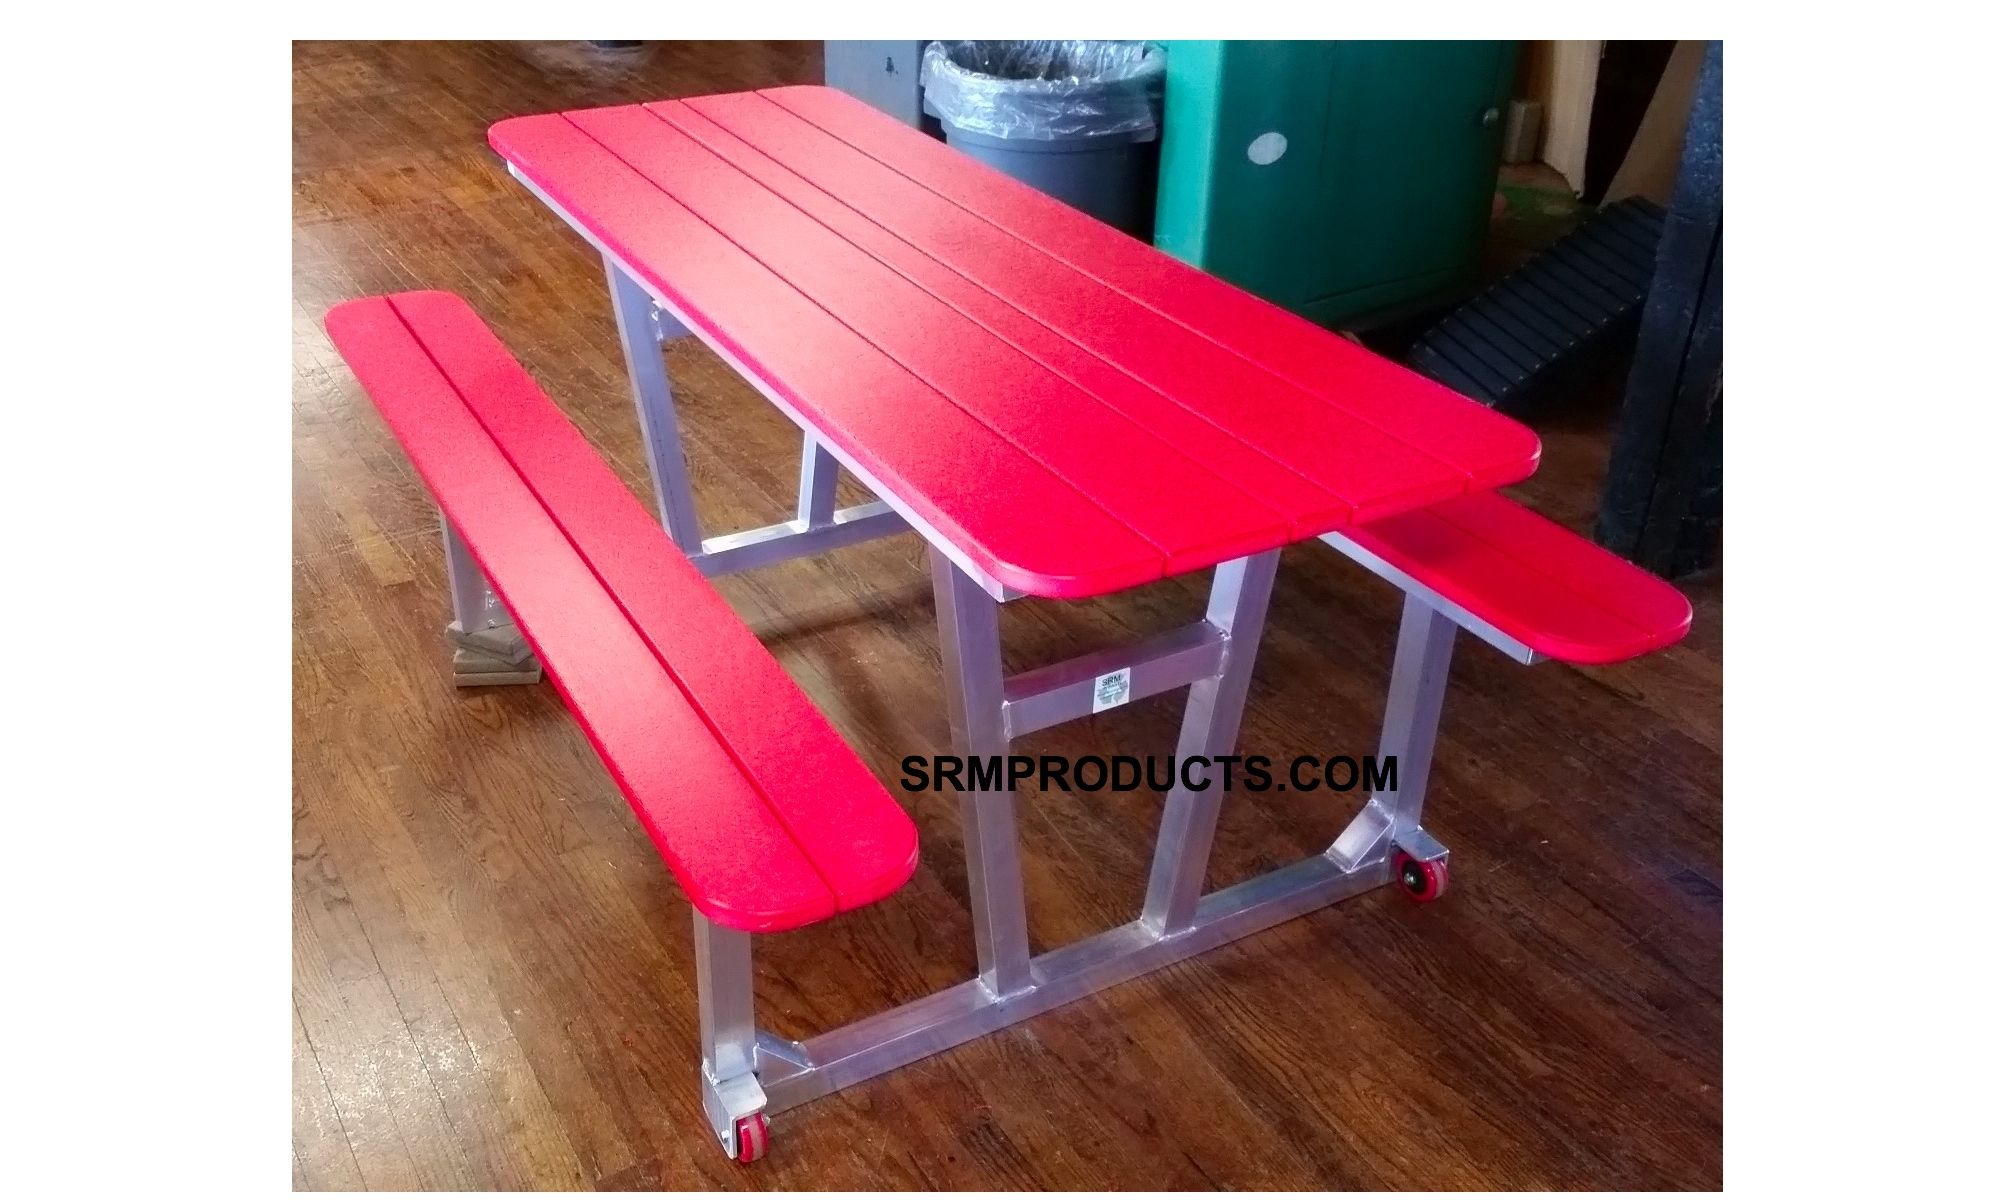 Custom Made Polywood Trex Picnic Table With An Aluminum Frame Wheels A Product